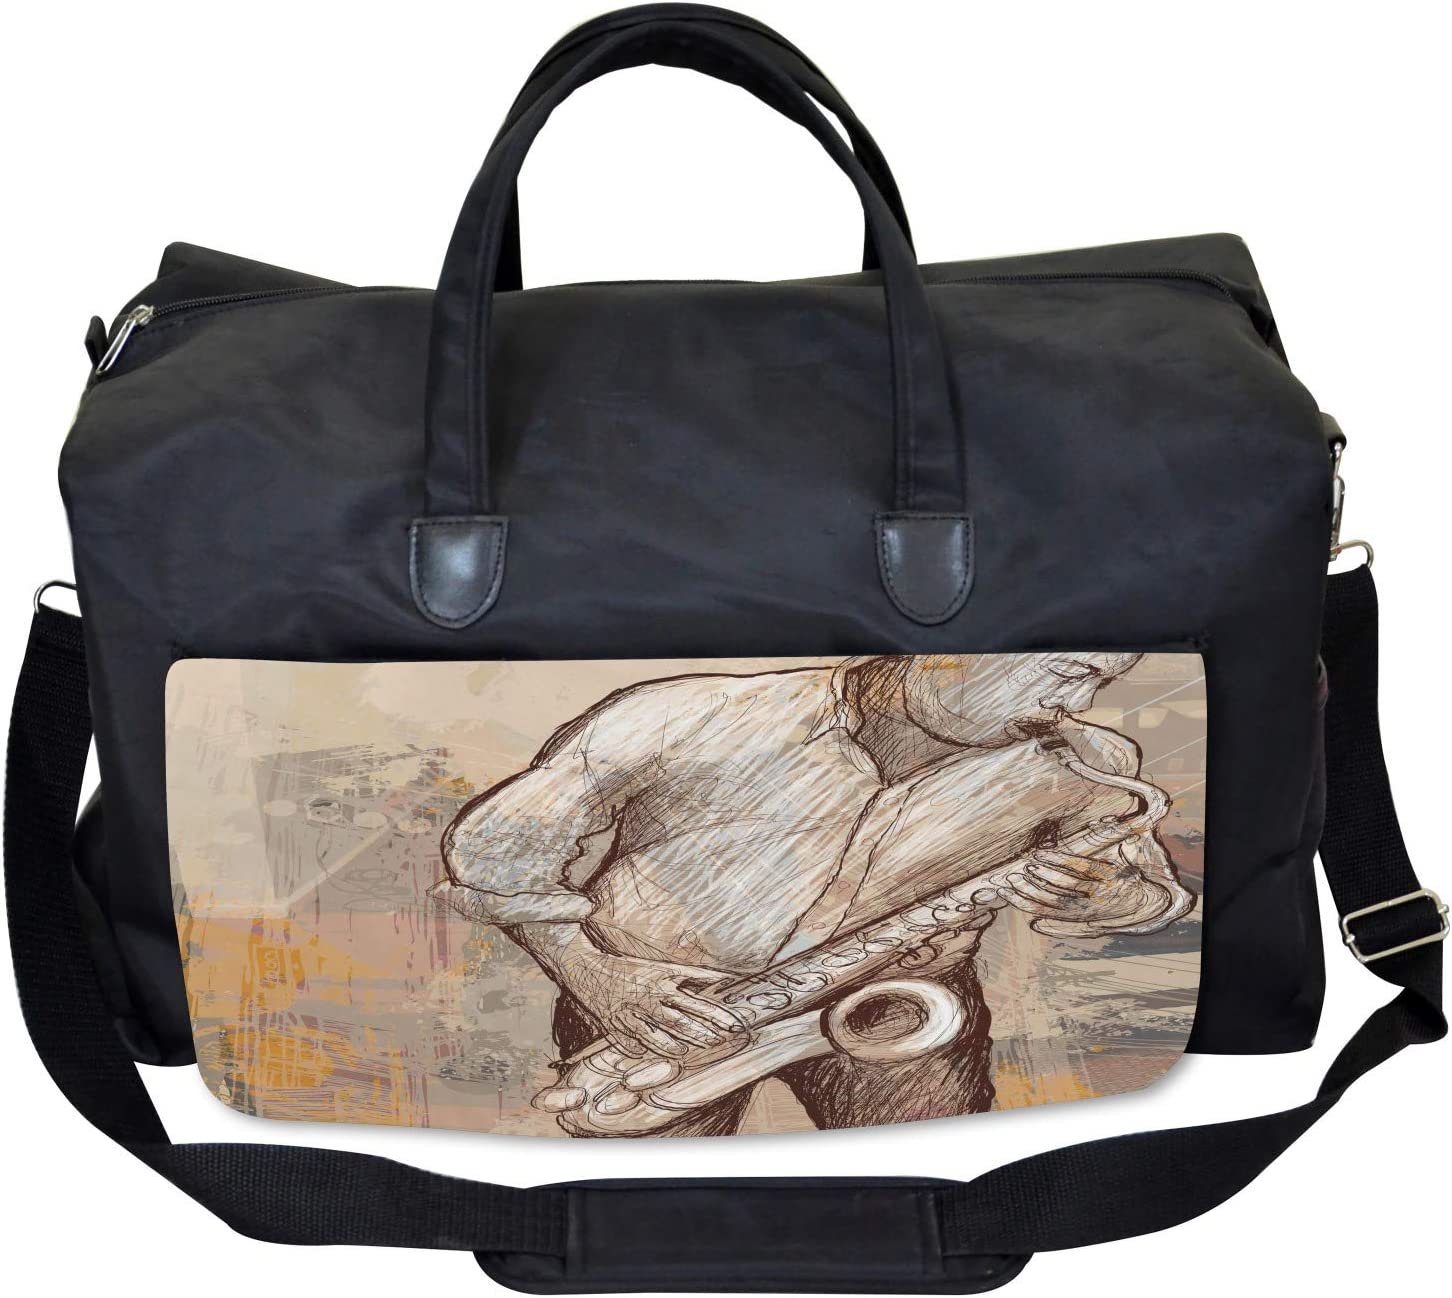 Jazz Musician on Street Large Weekender Carry-on Ambesonne Music Gym Bag